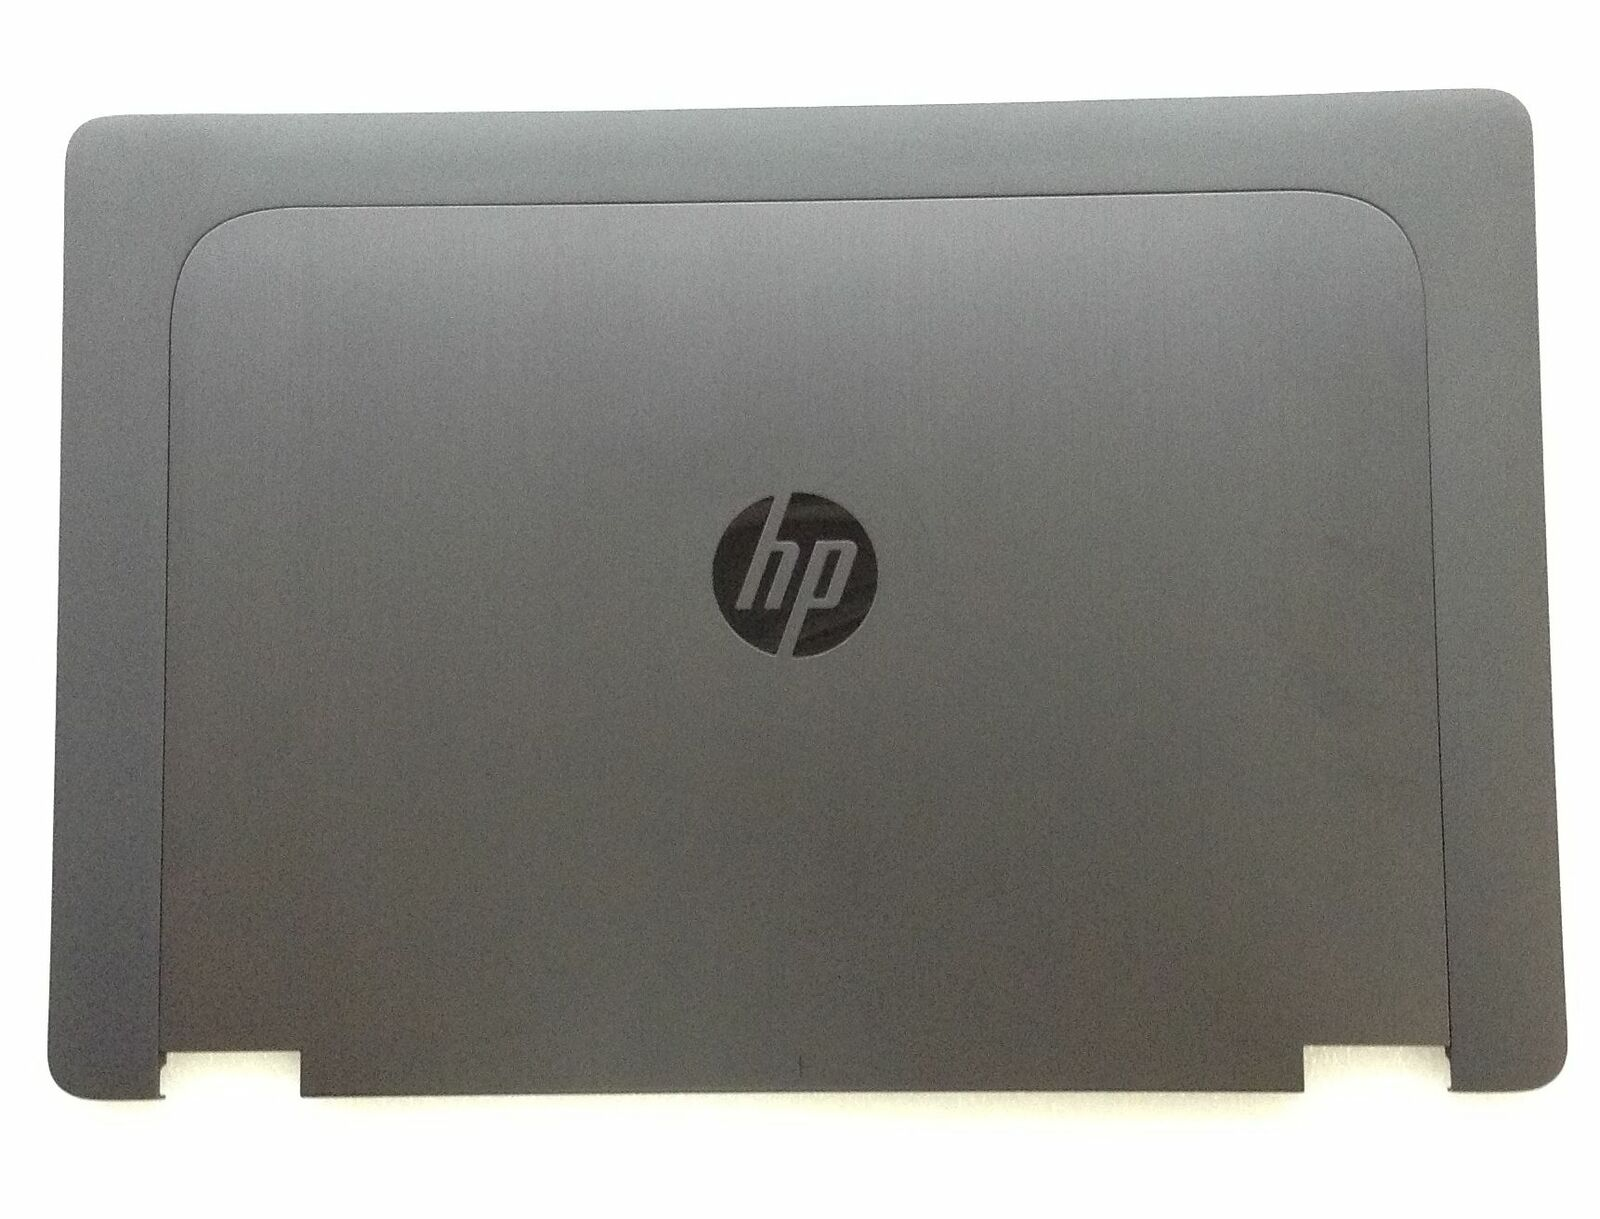 Hp Zbook 15 15.6 LCD Screen Back Top Cover Lid w// Wifi Antennas Am0tj000100